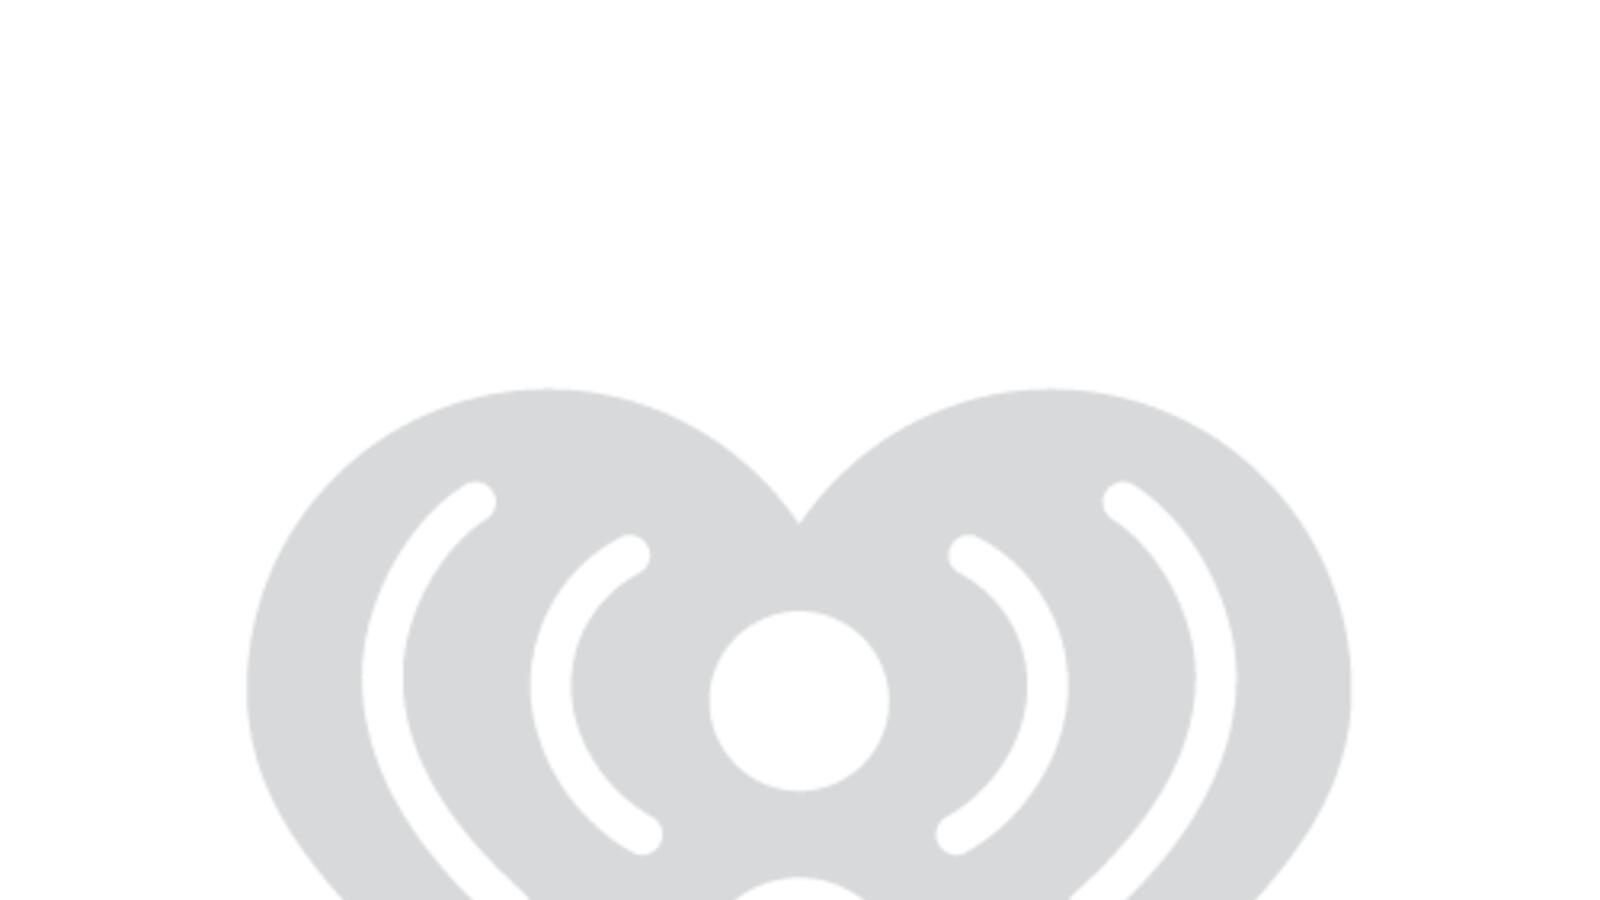 WATCH: Family Joins Search For Broward Teen Missing In Orlando-area